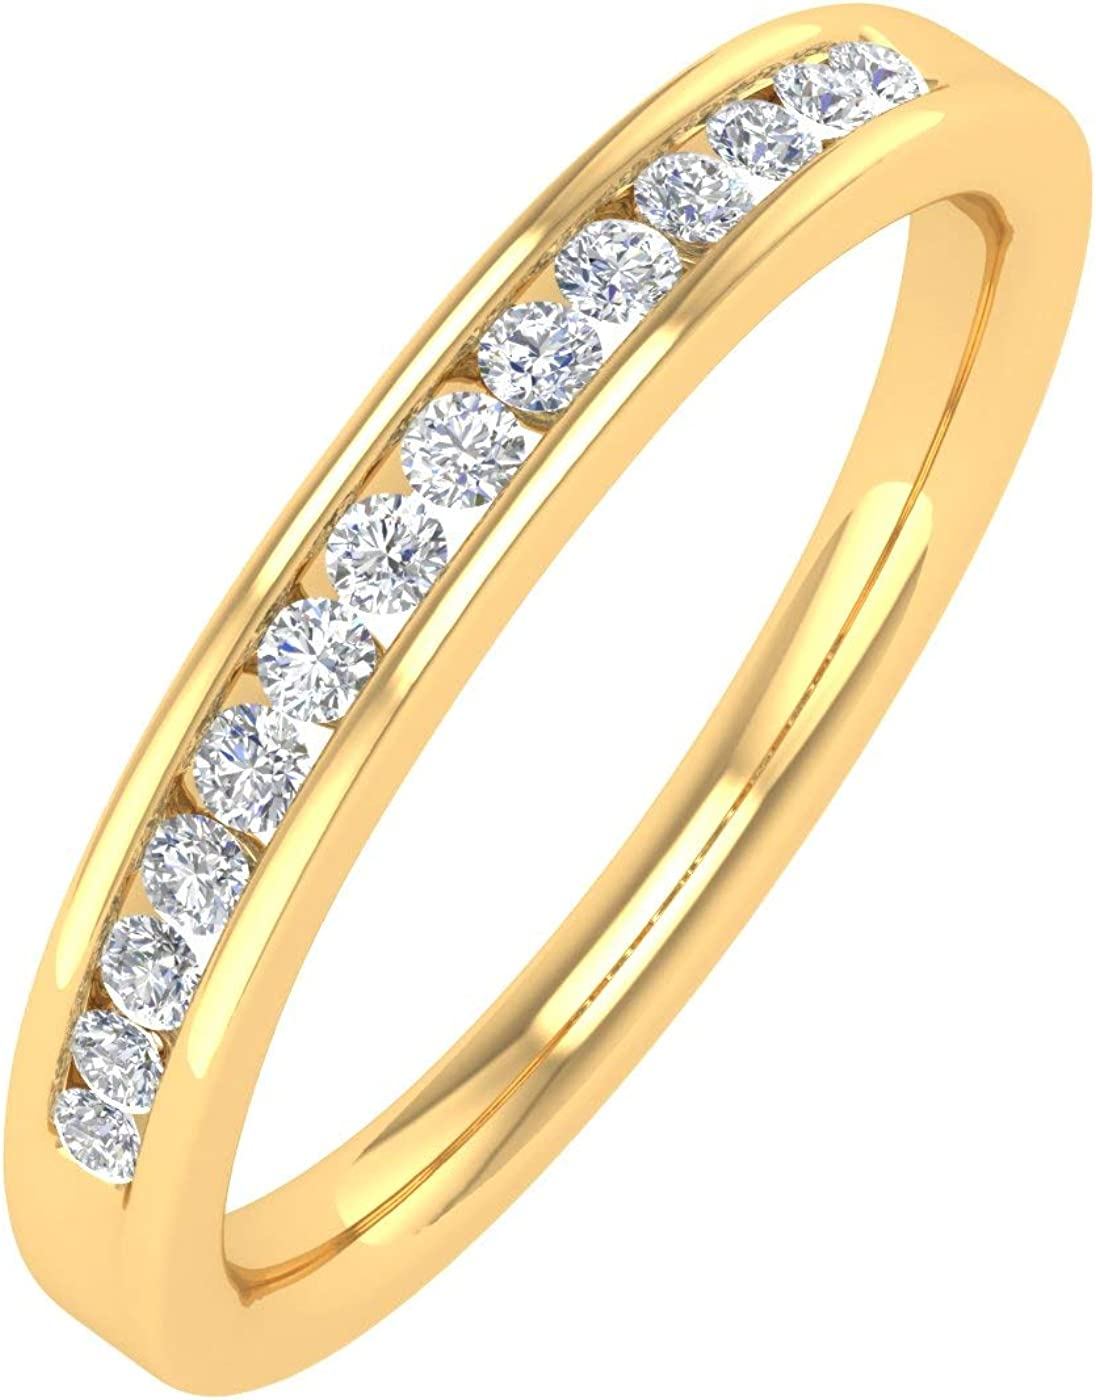 1/5 Carat Channel Set Diamond Wedding Band Ring in 14K Solid Gold